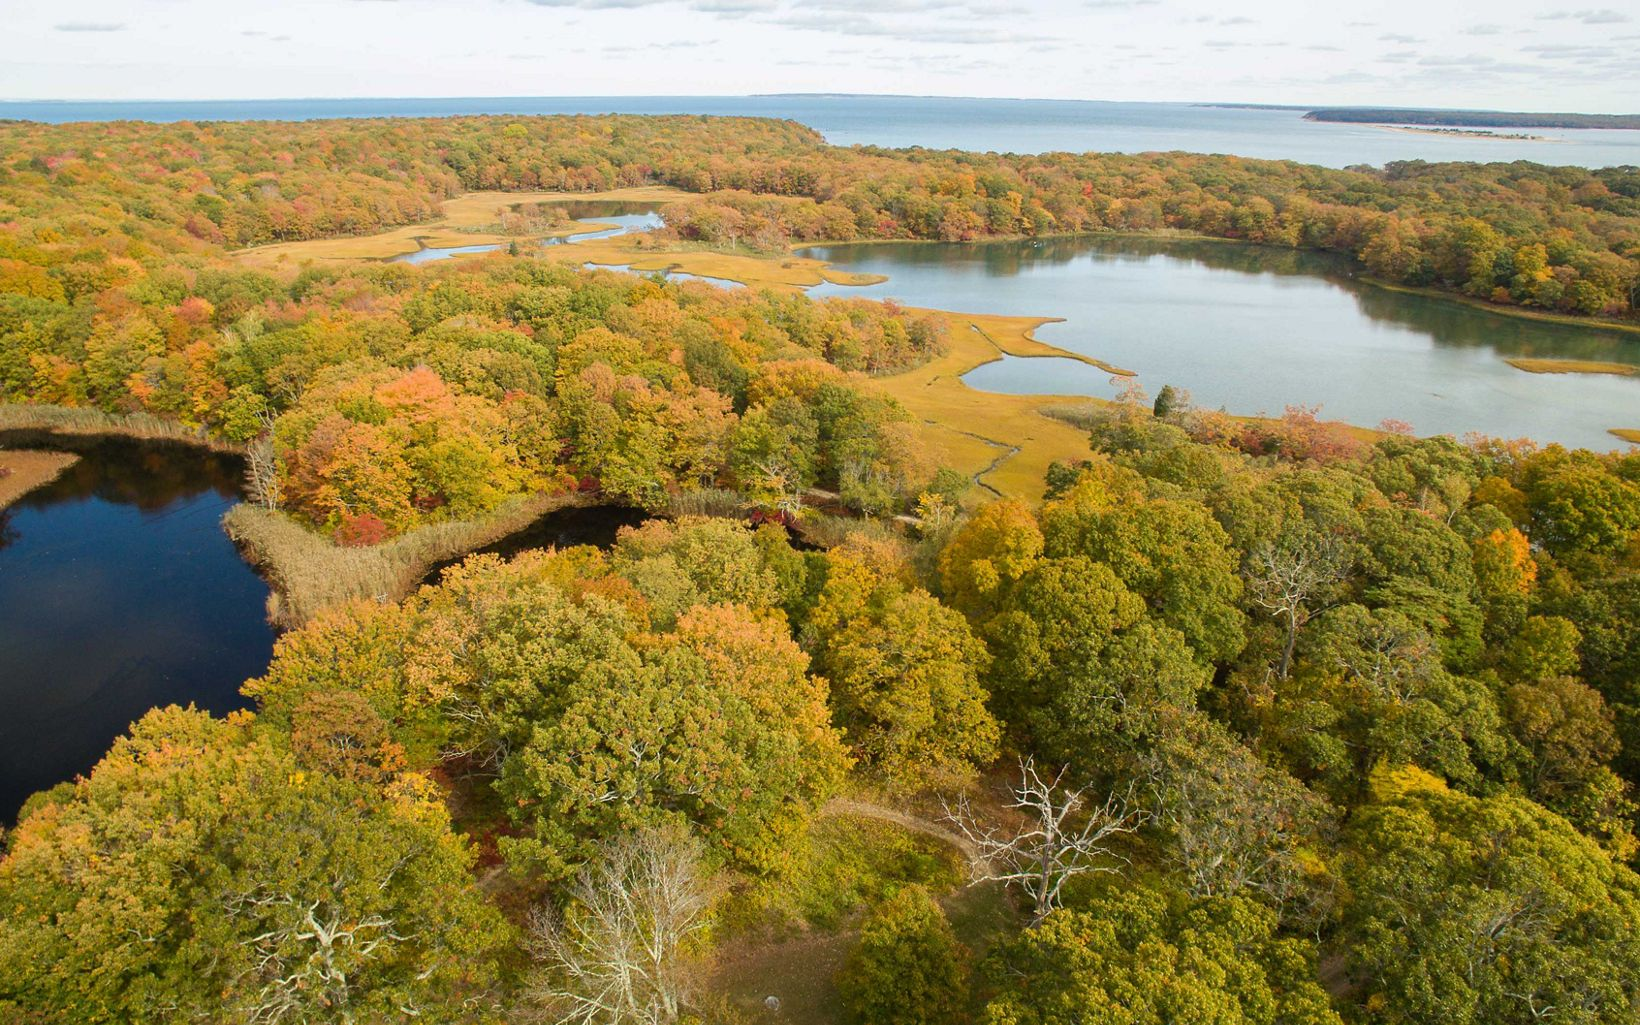 Aerial view of trees in fall color along the shore of several small ponds or lagoons with a broader shoreline in the distance.